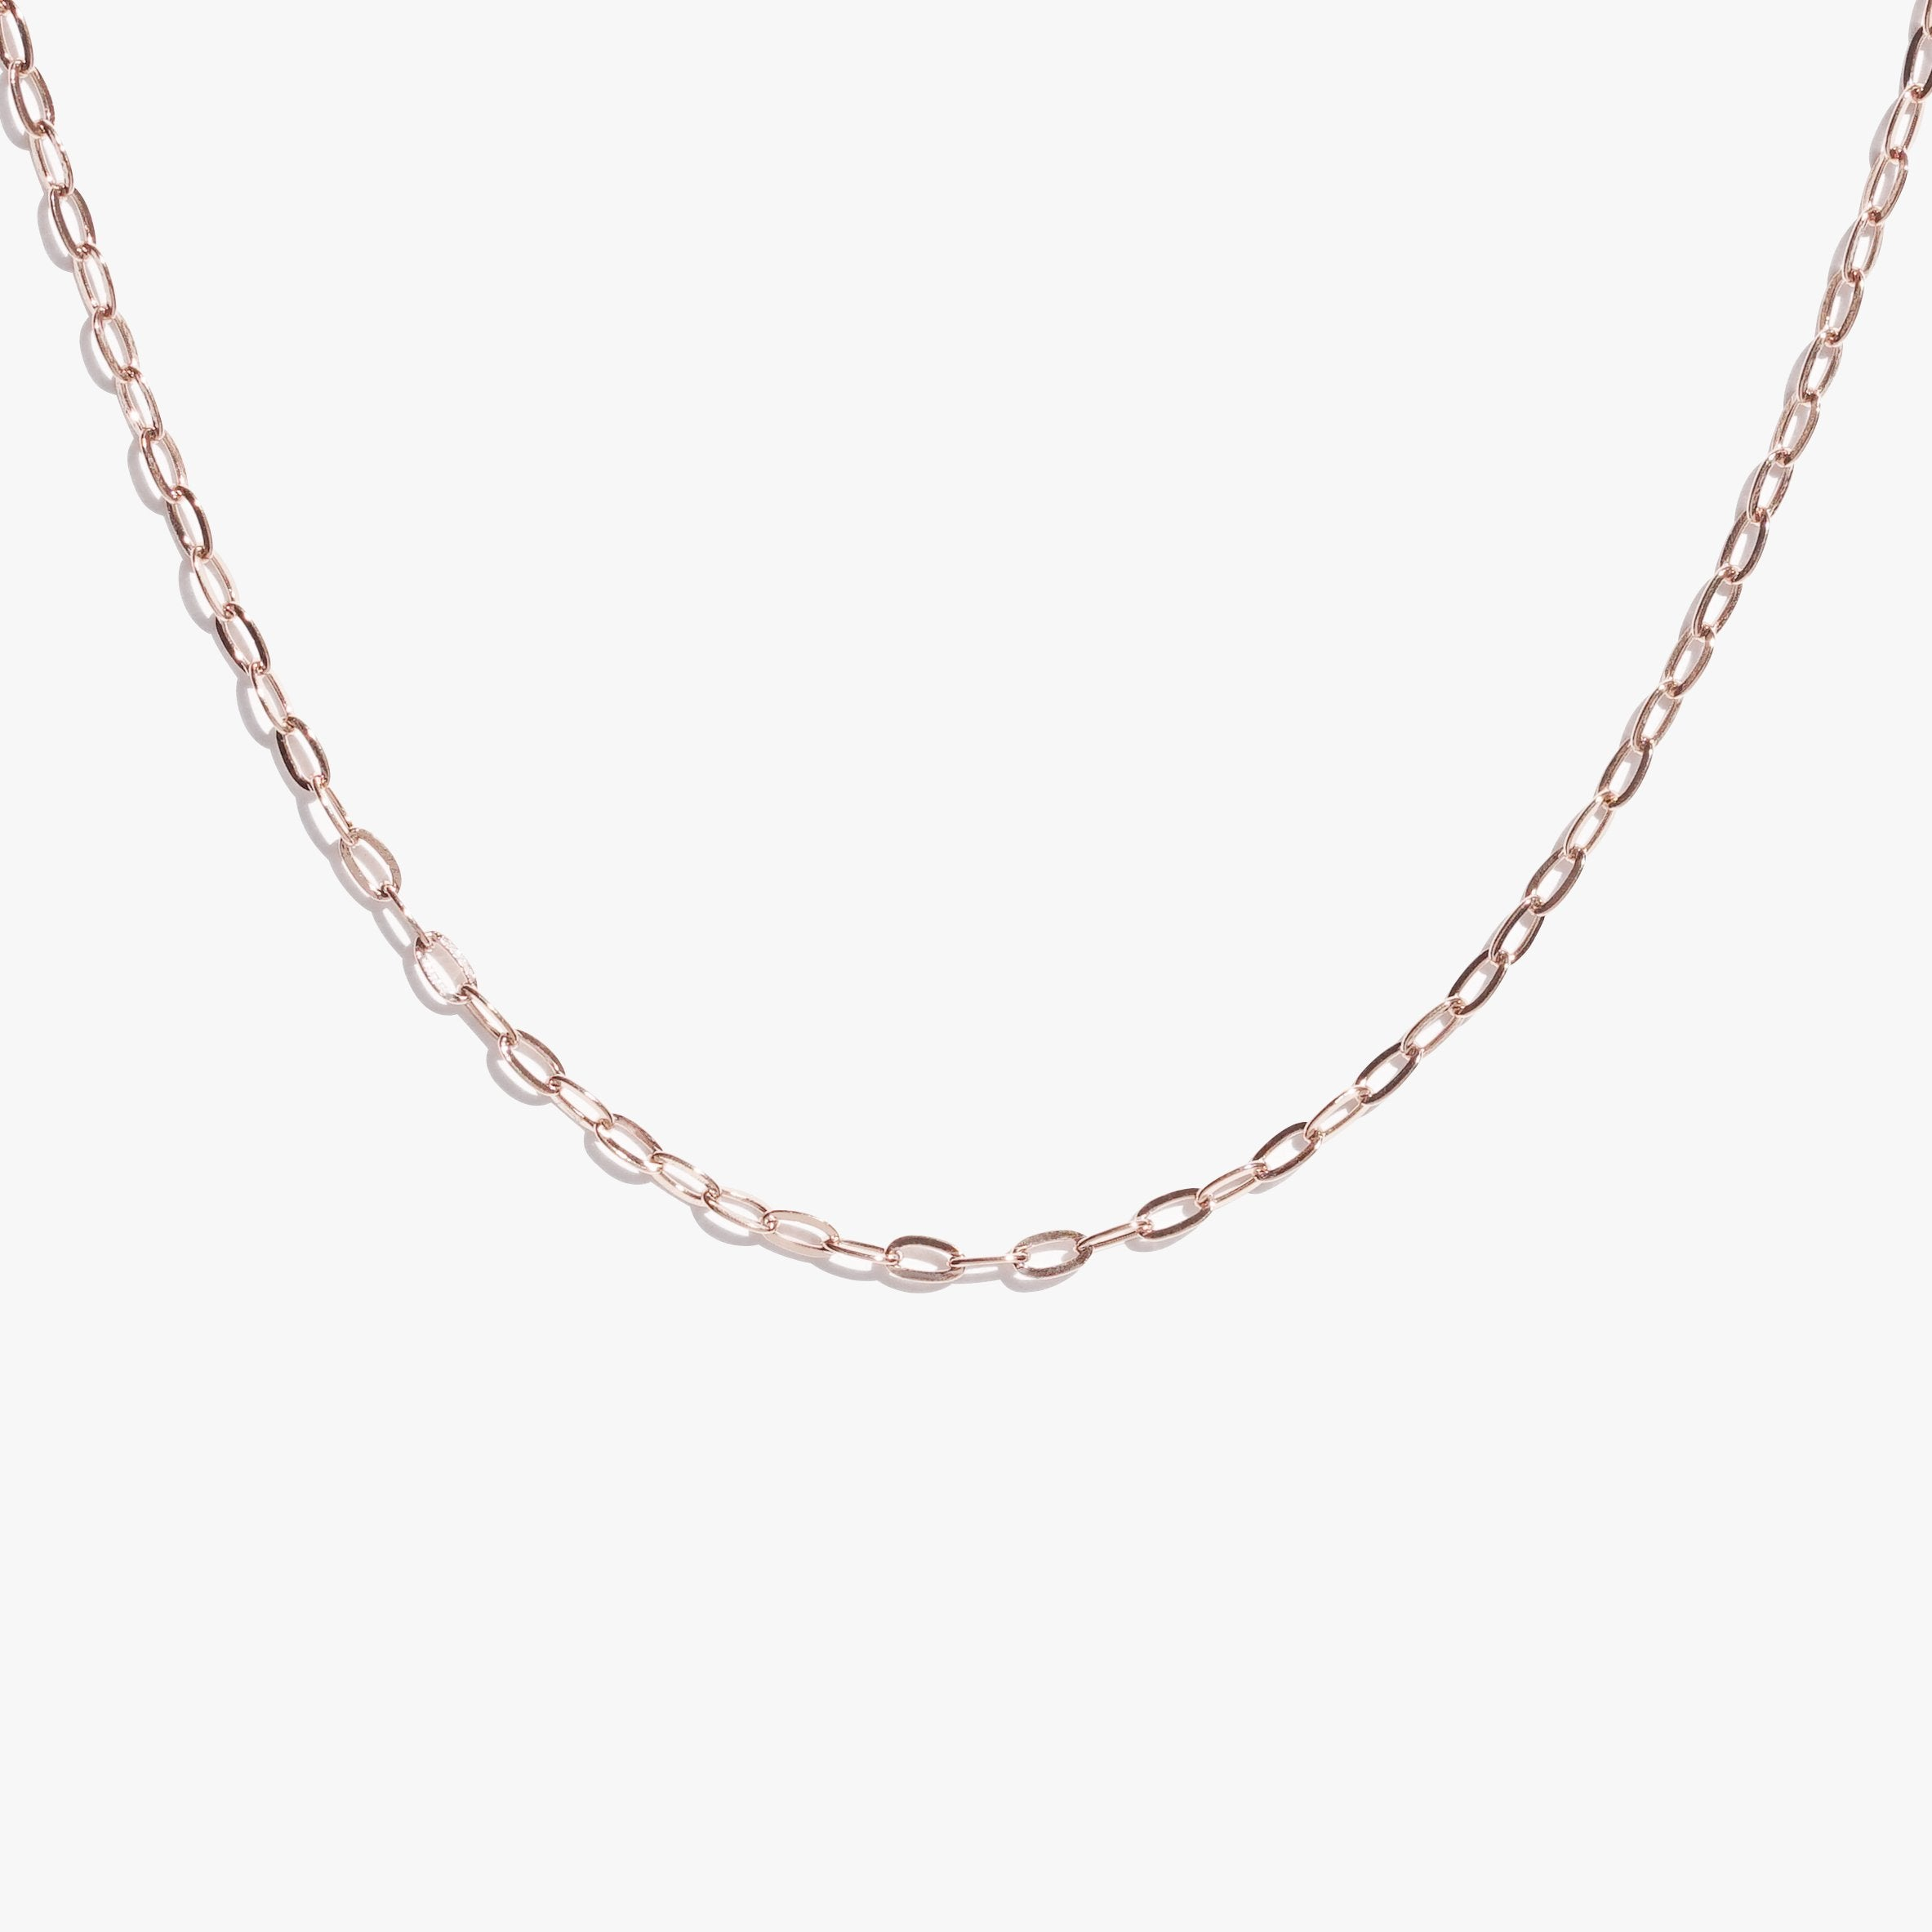 Chains - Oval Link Chain - Rose Gold